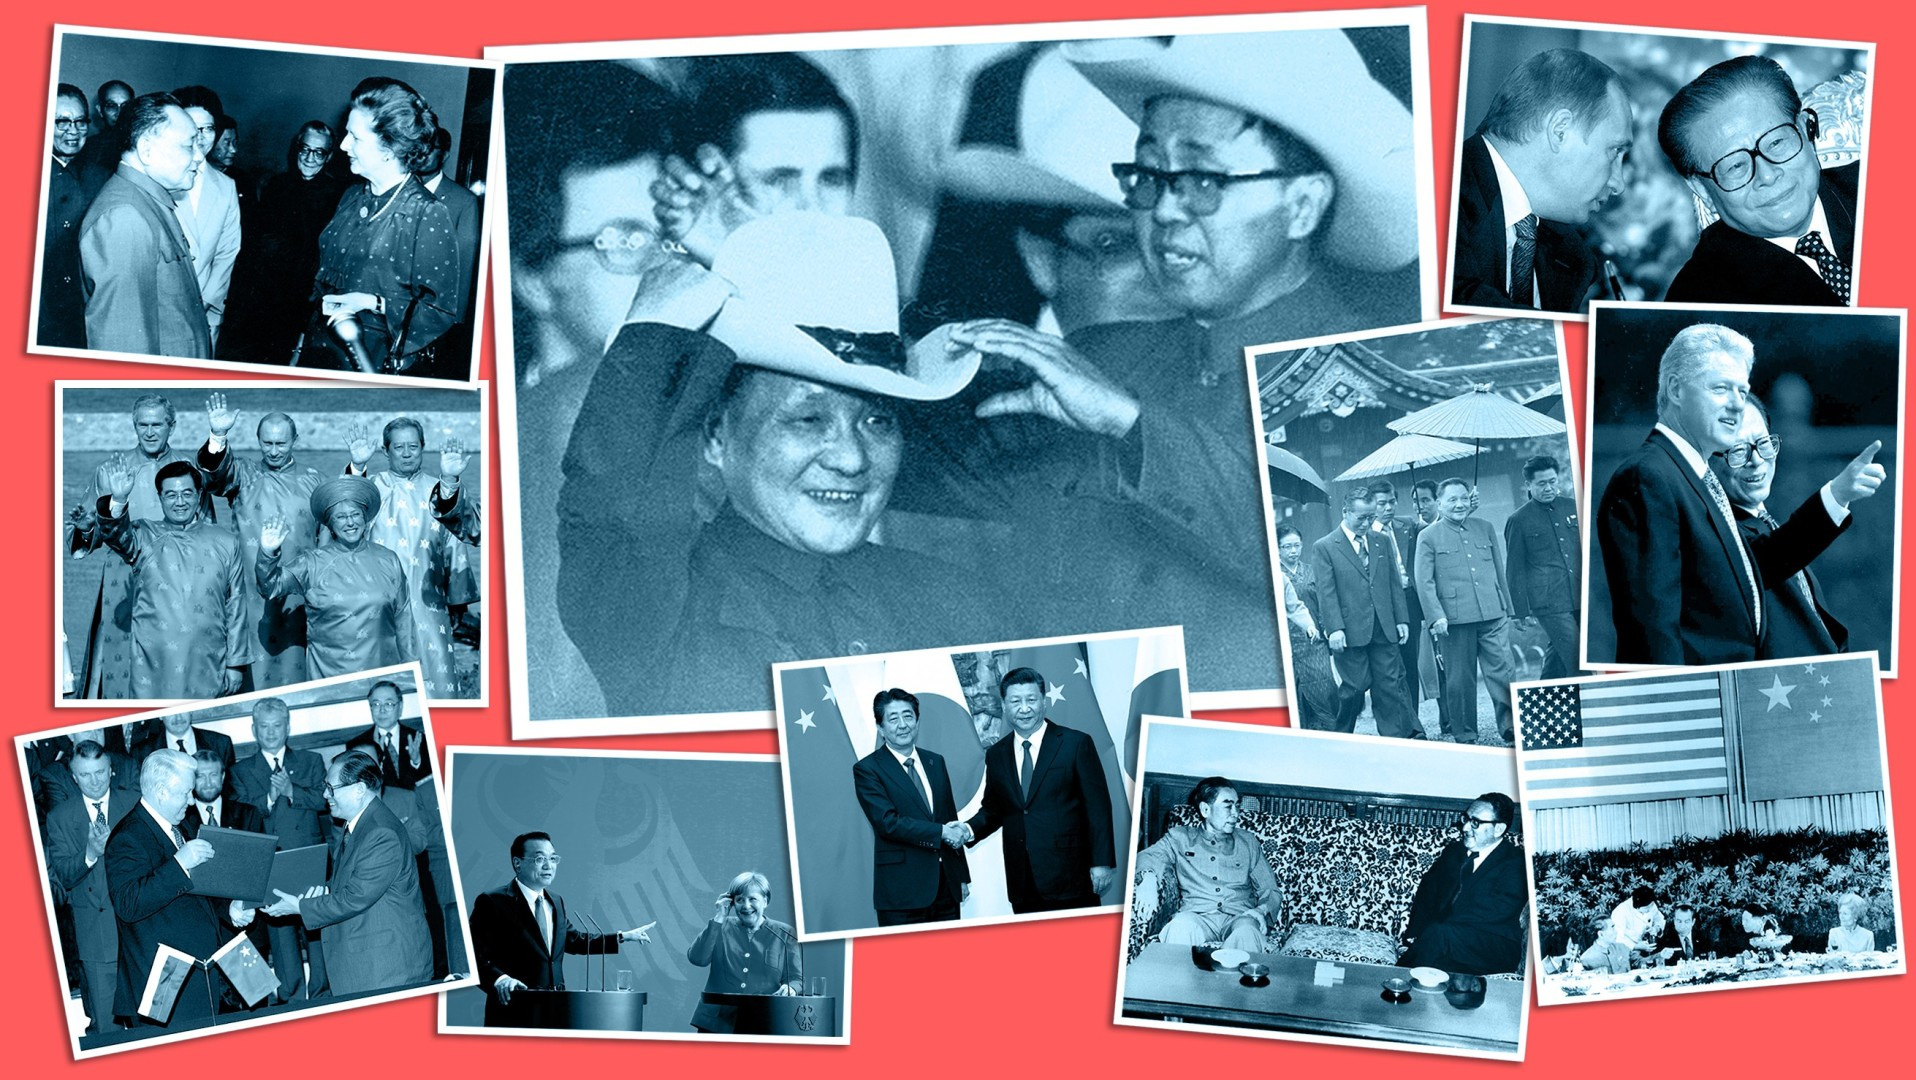 Over 40 Years Of Diplomatic Drama A Rising China Opens Up To And